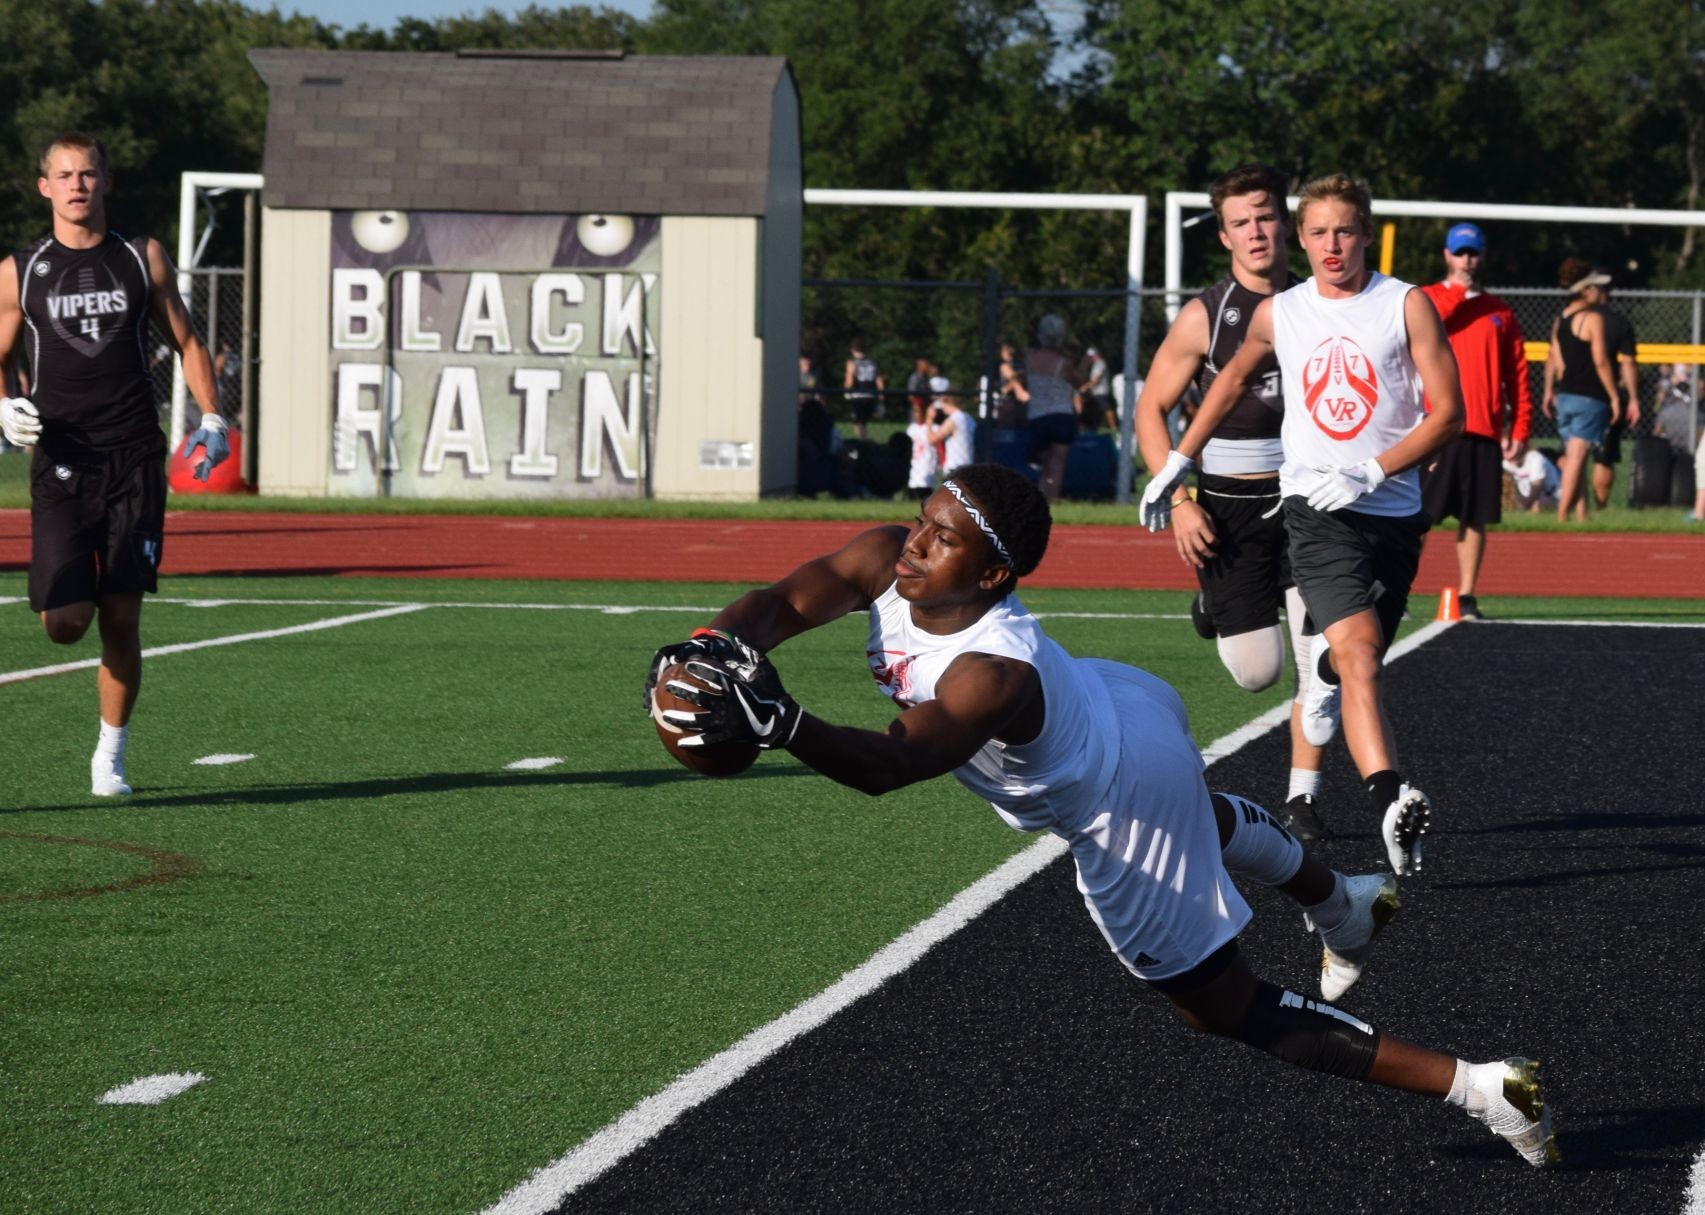 Senior receiver Jamil Pittman caught 29 passes for 488 yards and two touchdowns with a pair of 100-yard games last season. He is the main target for the Rangers' 7-on-7 team.